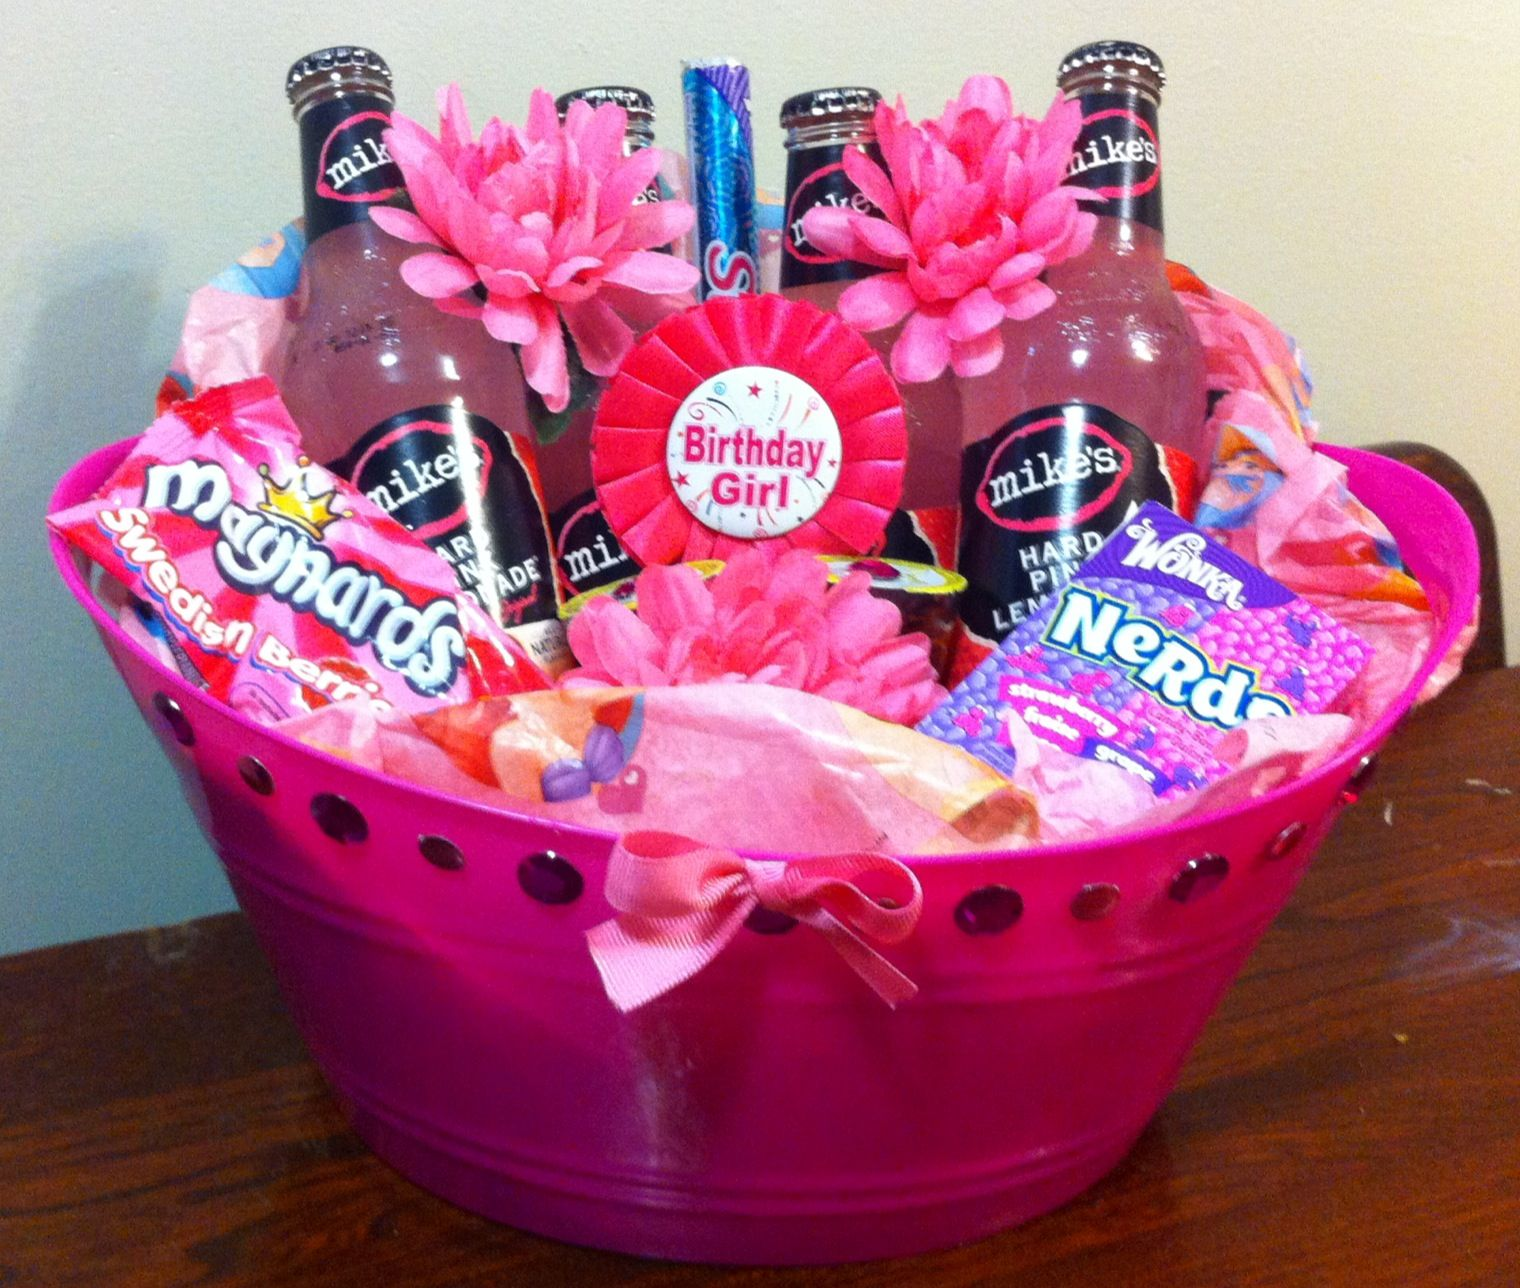 Girly Birthday Basket Dollar Store Bin With Stick On Jewels Fake Flowers And Pink Tissue Paper Filled Things